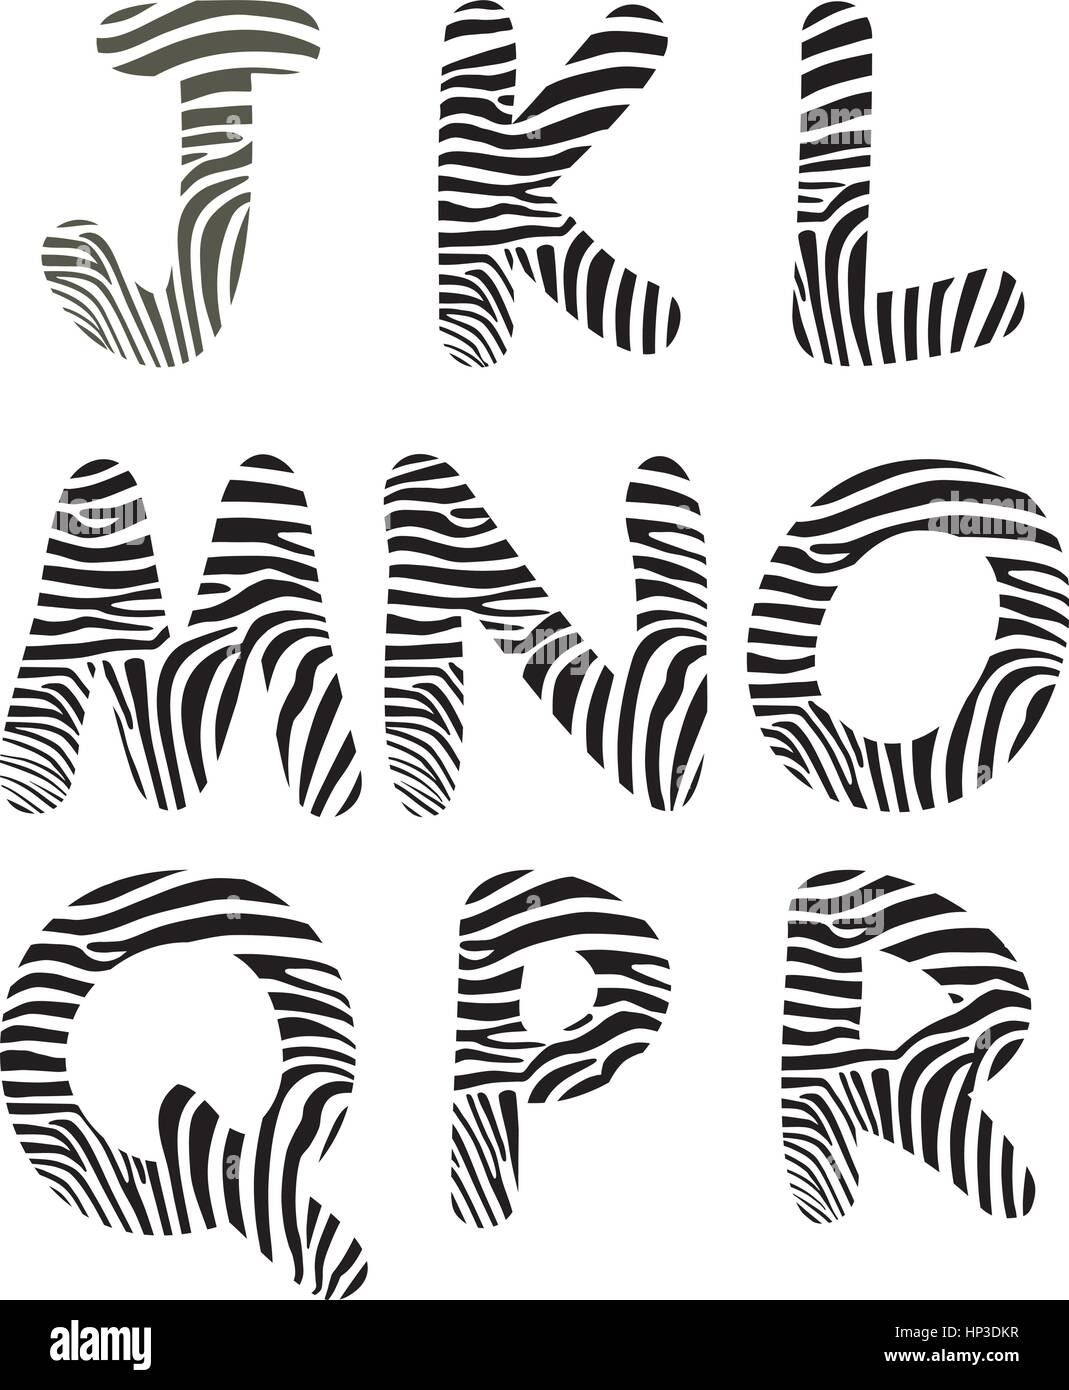 Font made up of zebra camouflage - Stock Vector